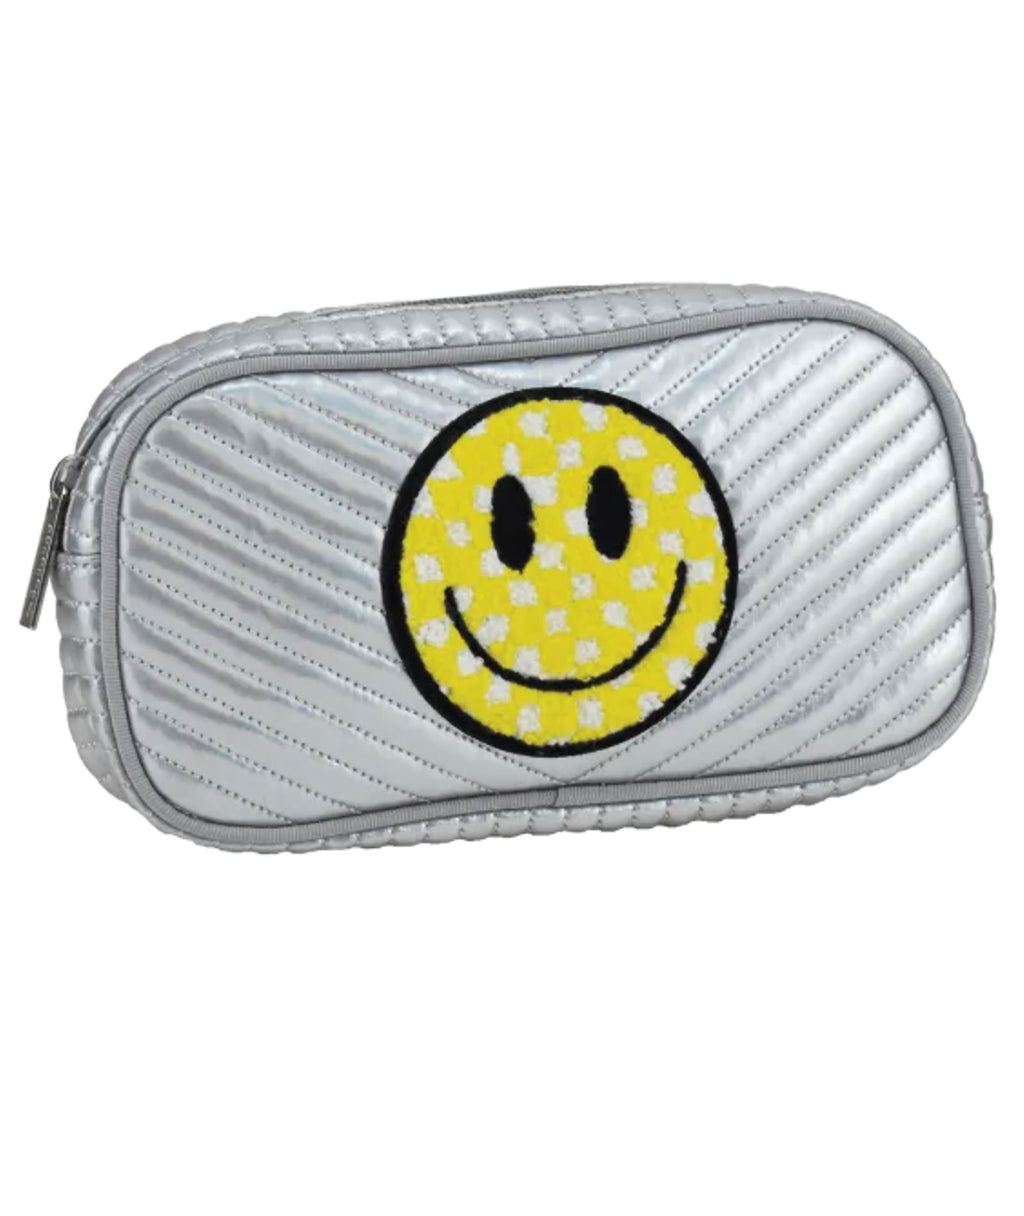 iScream Small Silver Smiley Bag